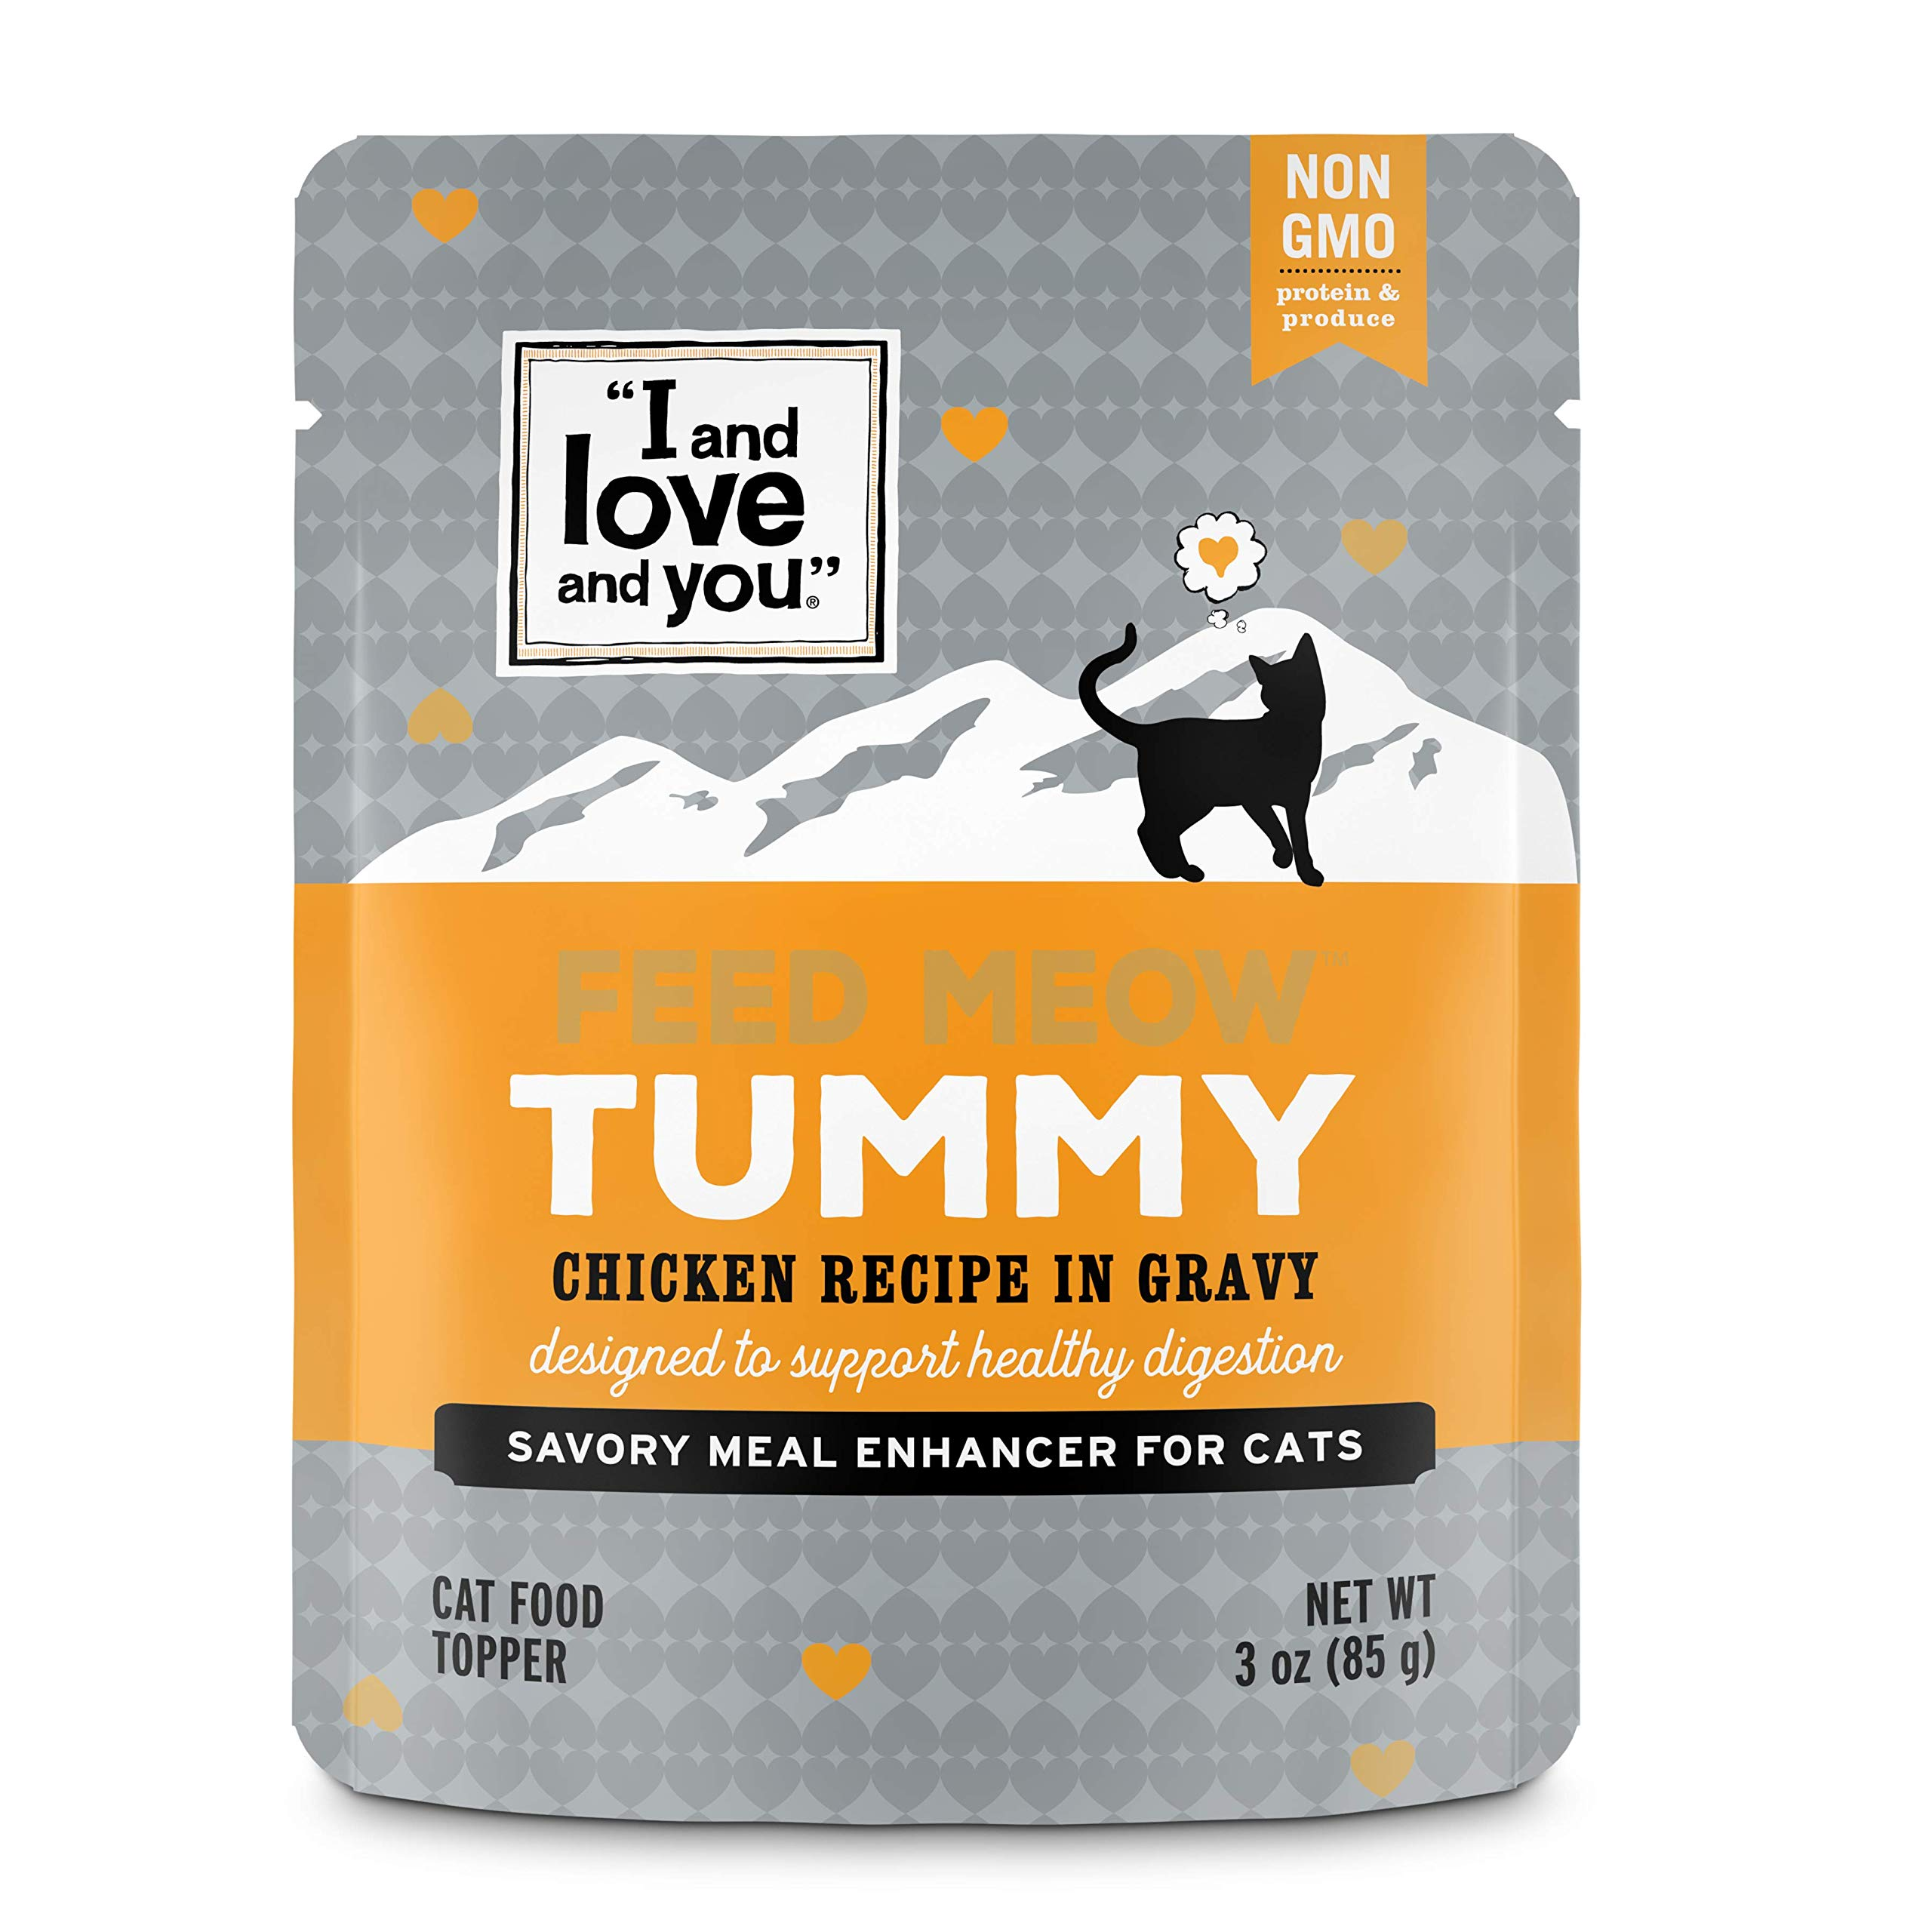 I and Love and You Feed Meow Tummy Wet Cat Food Pouch, Chicken Recipe in Gravy, 3 oz (Pack of 12) by I and love and you